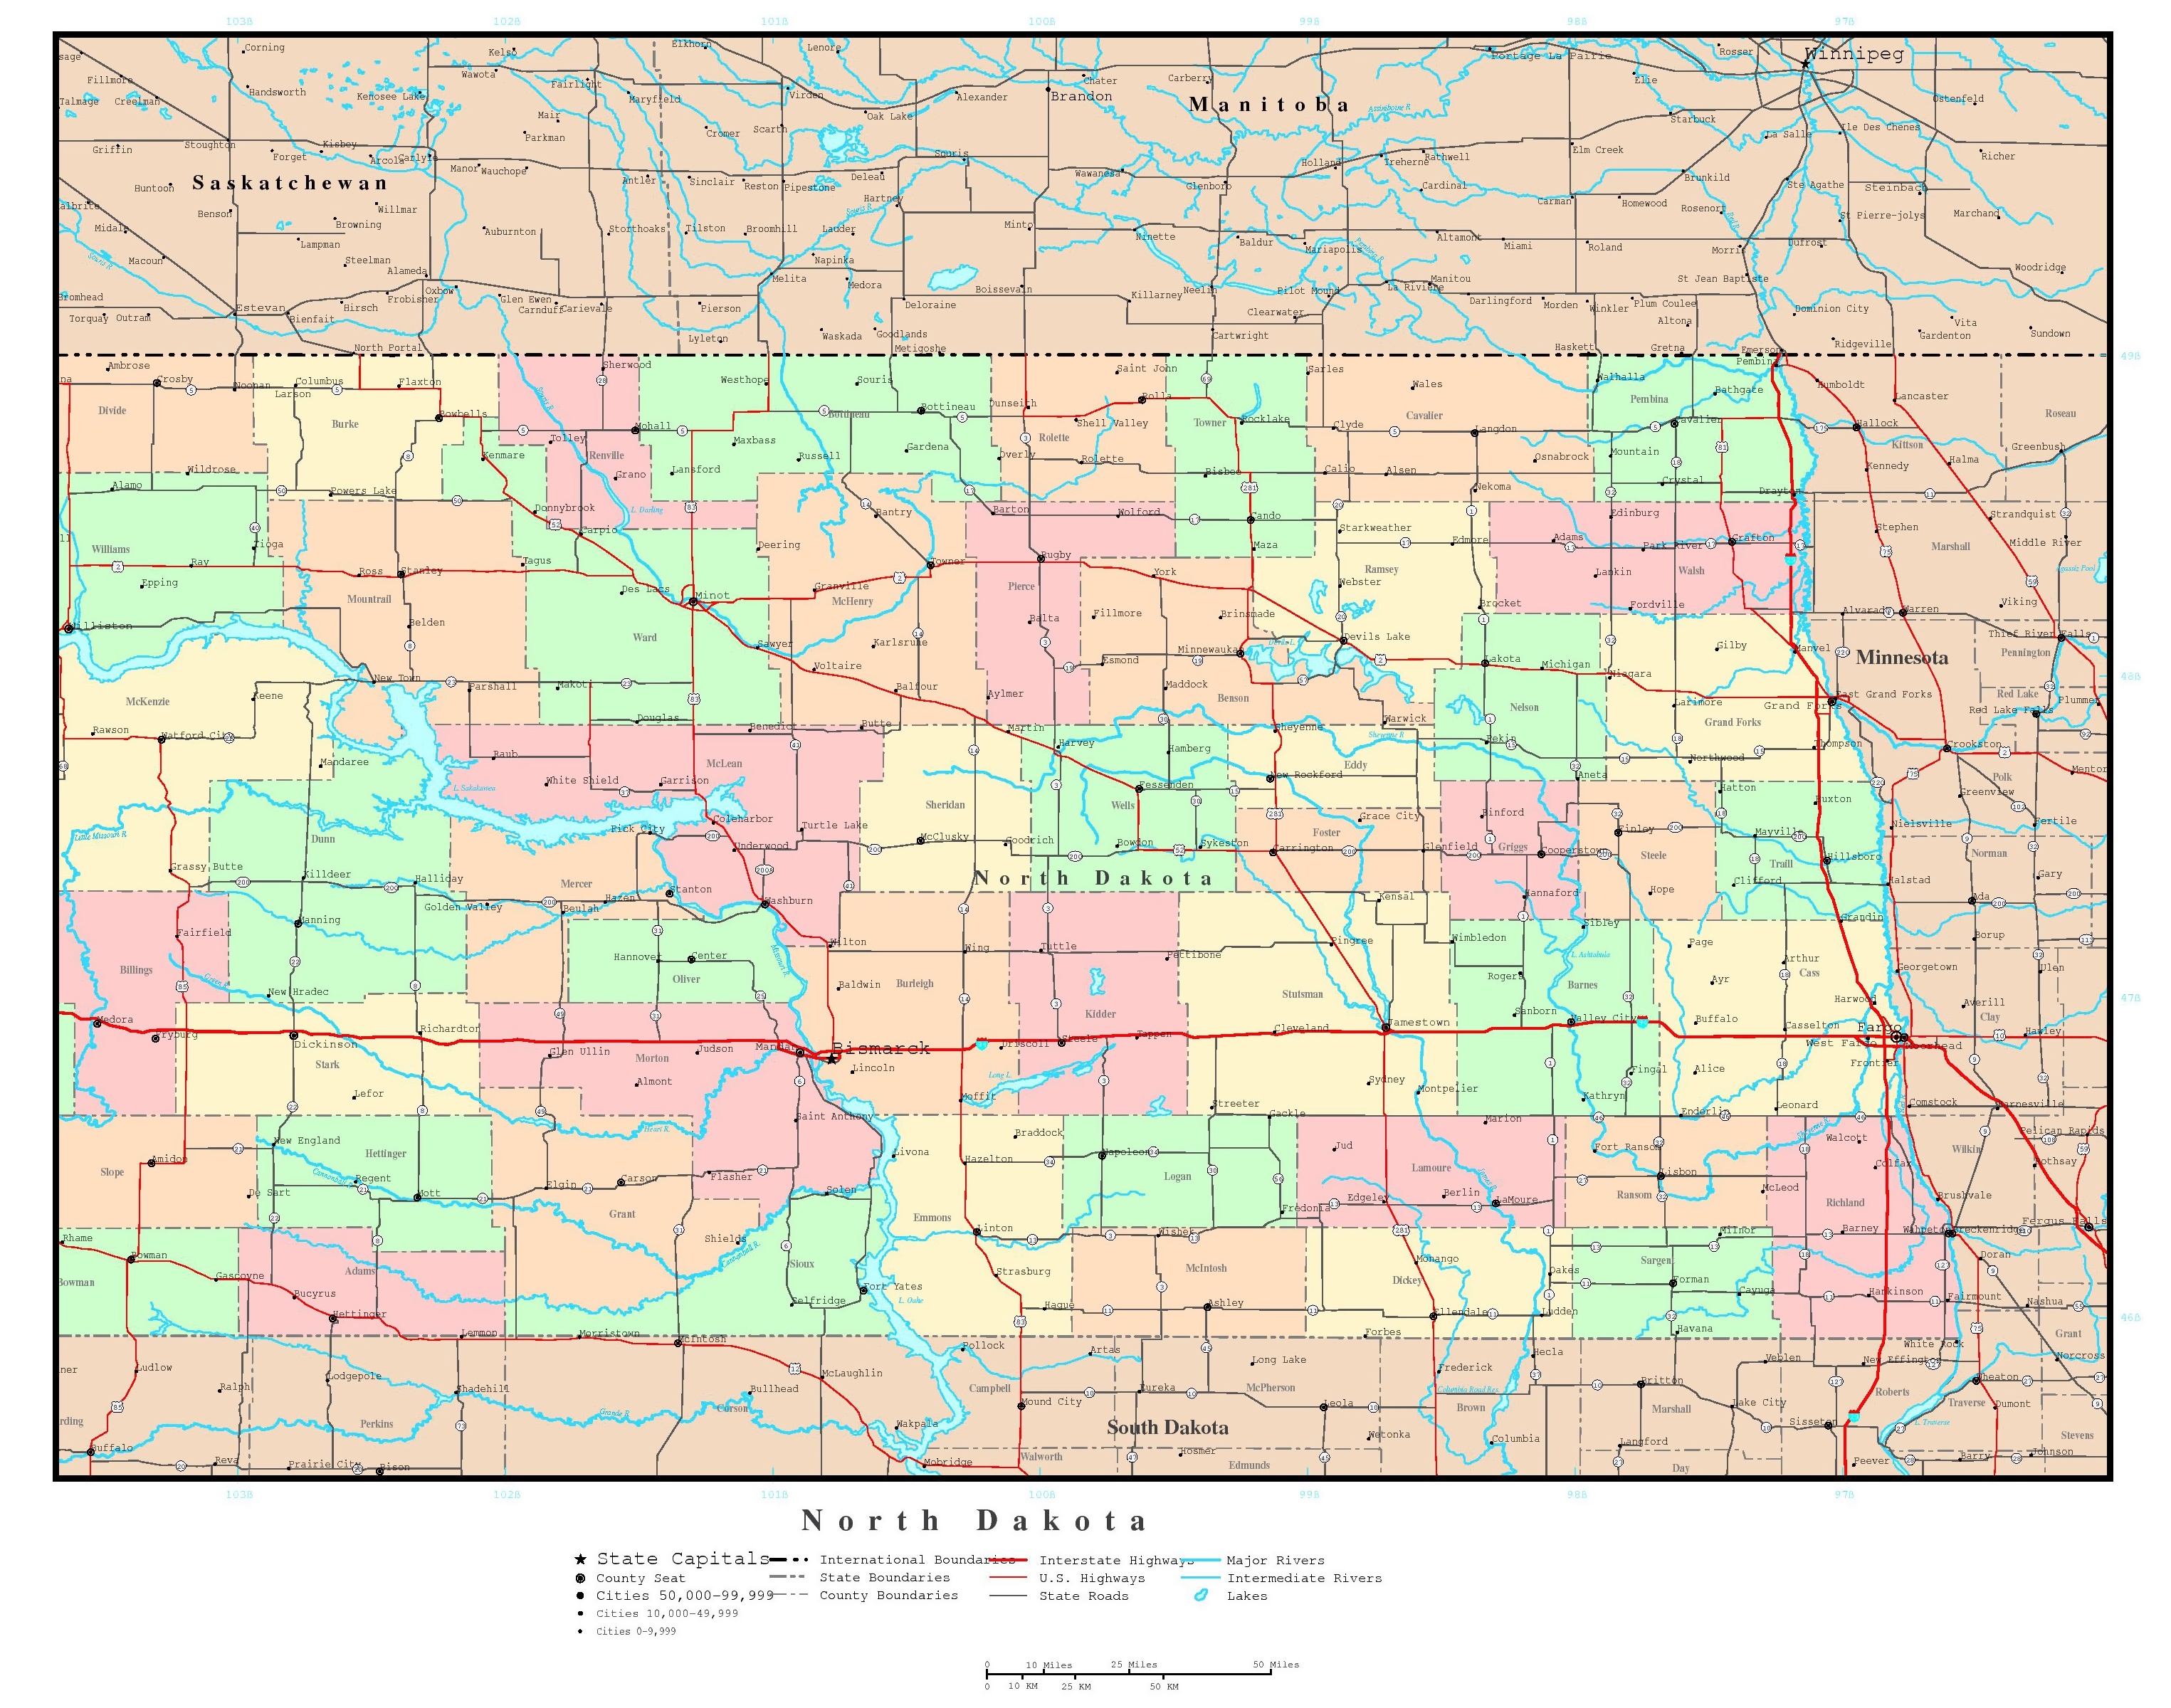 Large Detailed Administrative Map Of North Dakota State With Roads - North dakota map usa